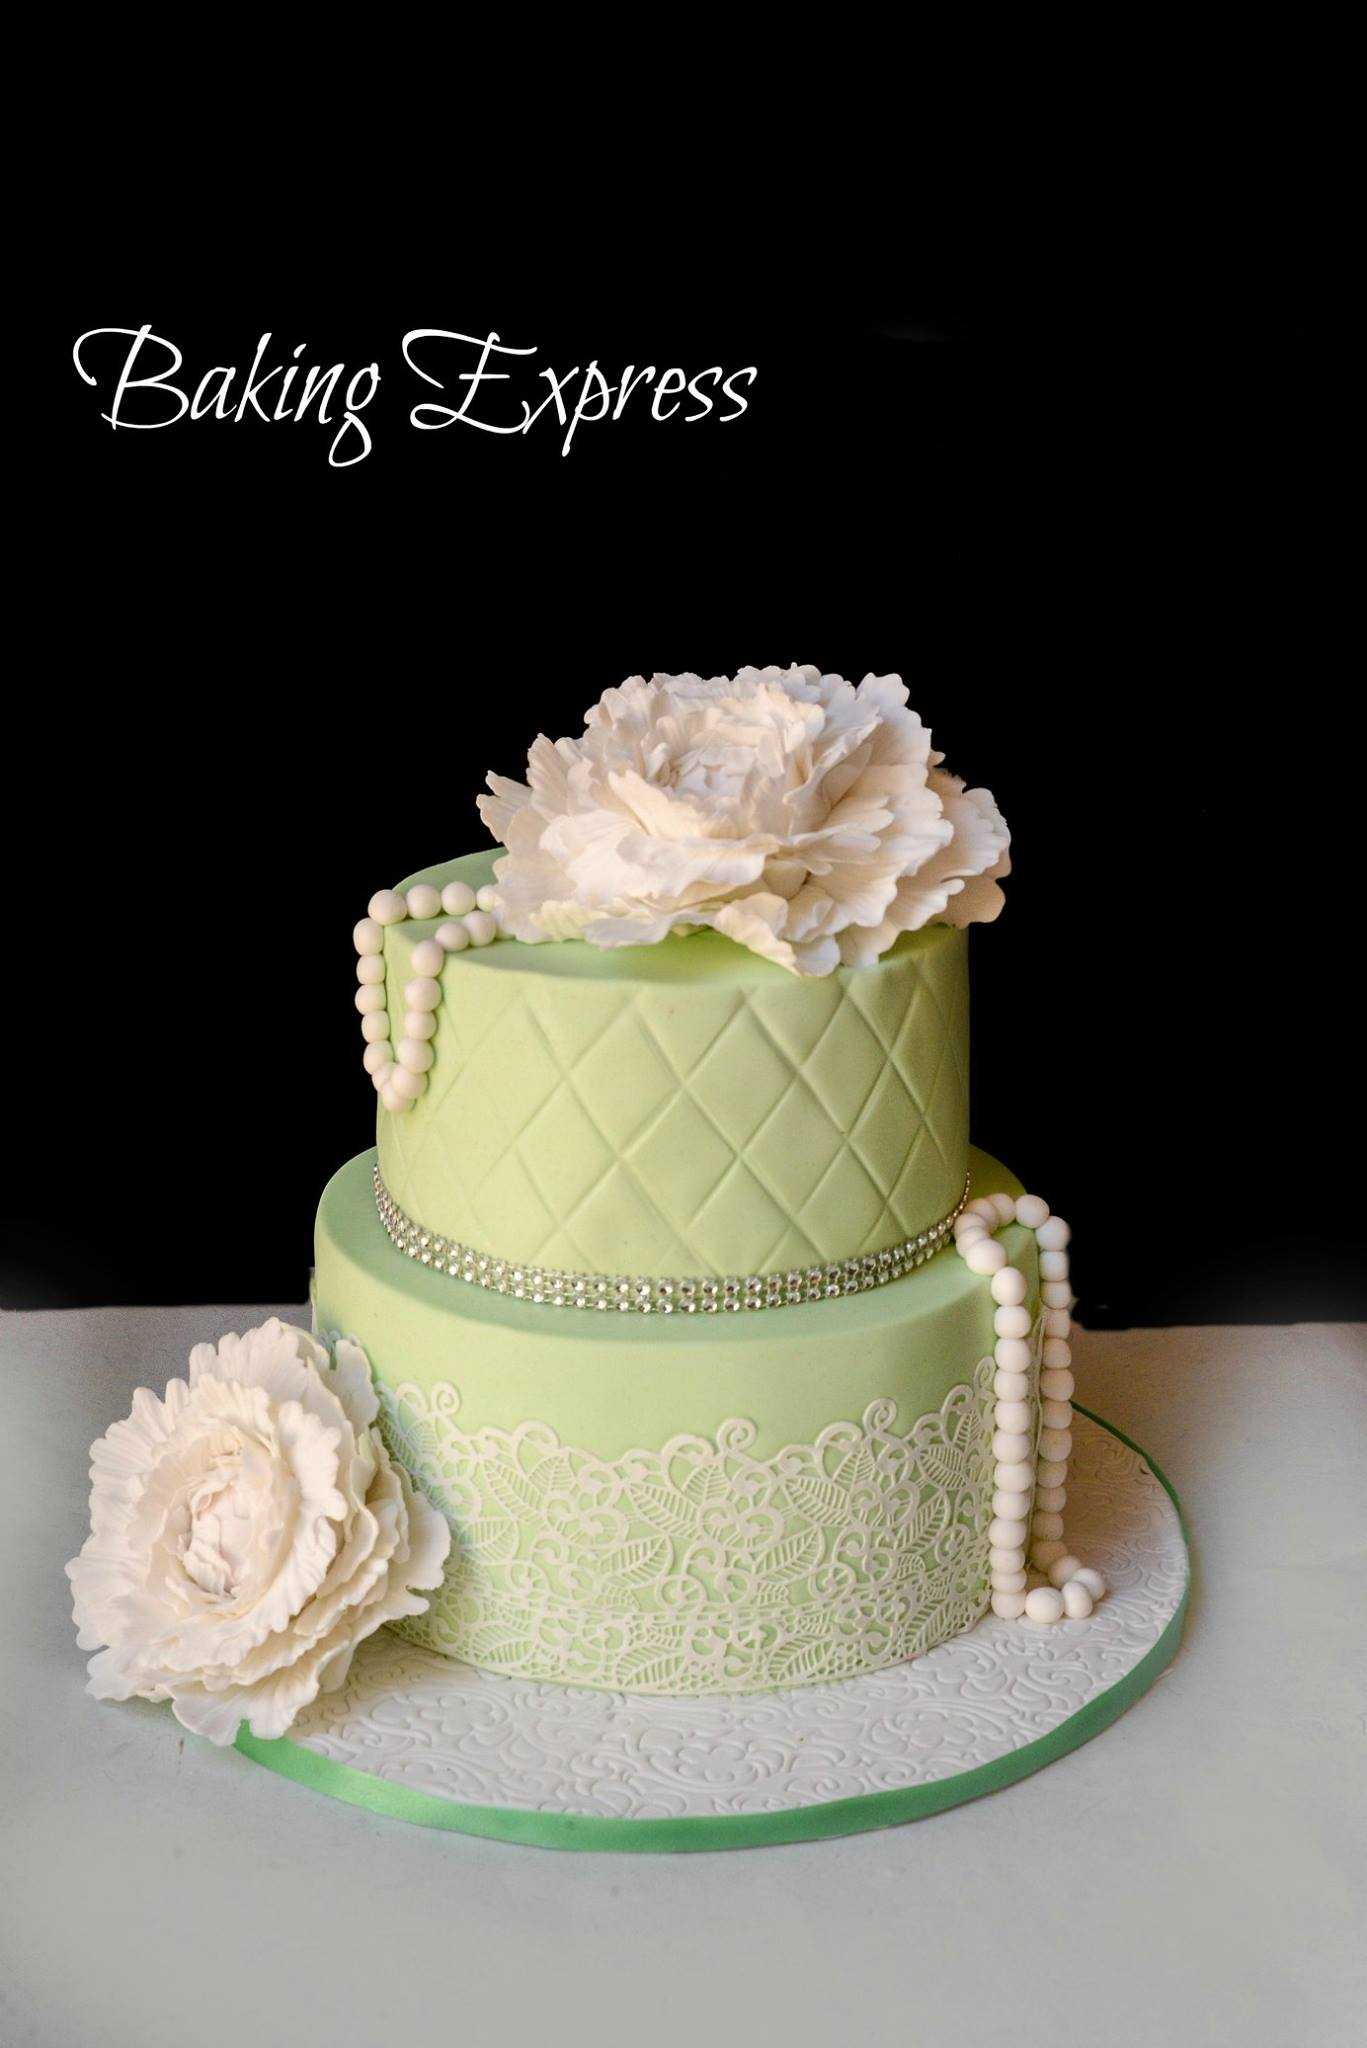 Baking-Express.jpg#asset:16142